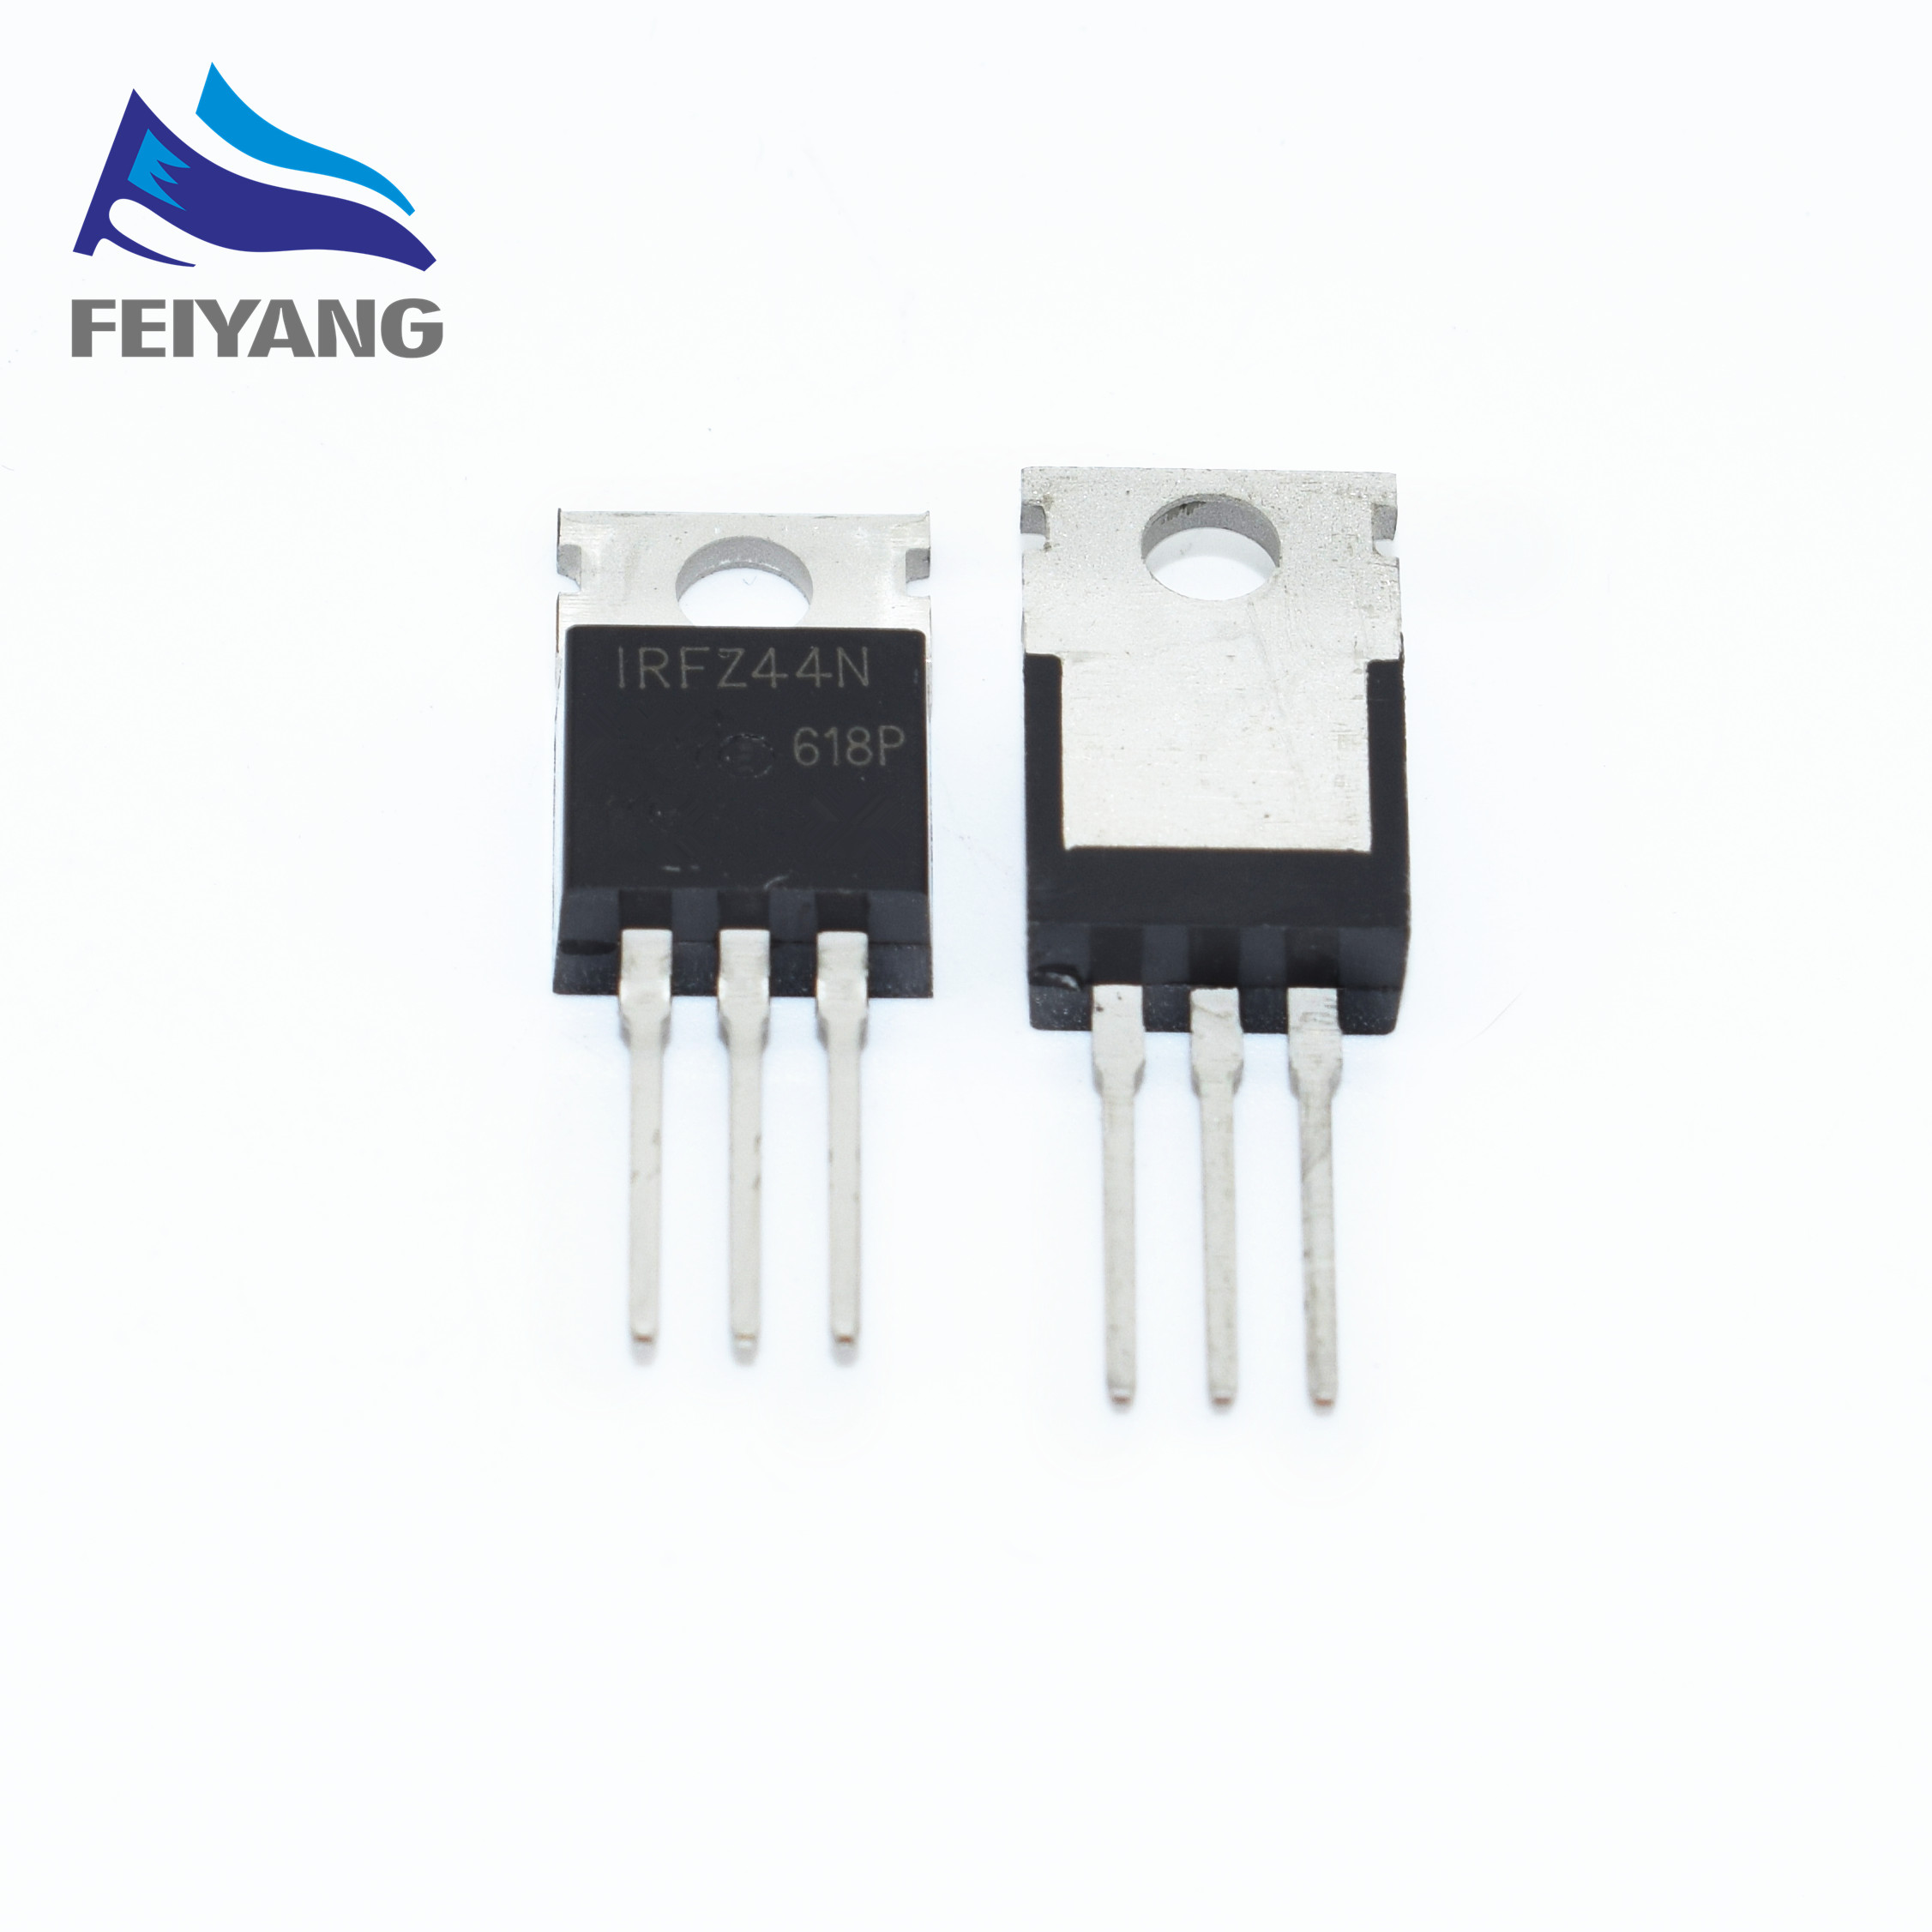 10pcs Irfz44n Irfz44 Irfz44npbf Mosfet Mosft 55v 41a 175mohm 42nc As Shown Below A P Channel Power Irf4905 Is Used And It 49a To 220